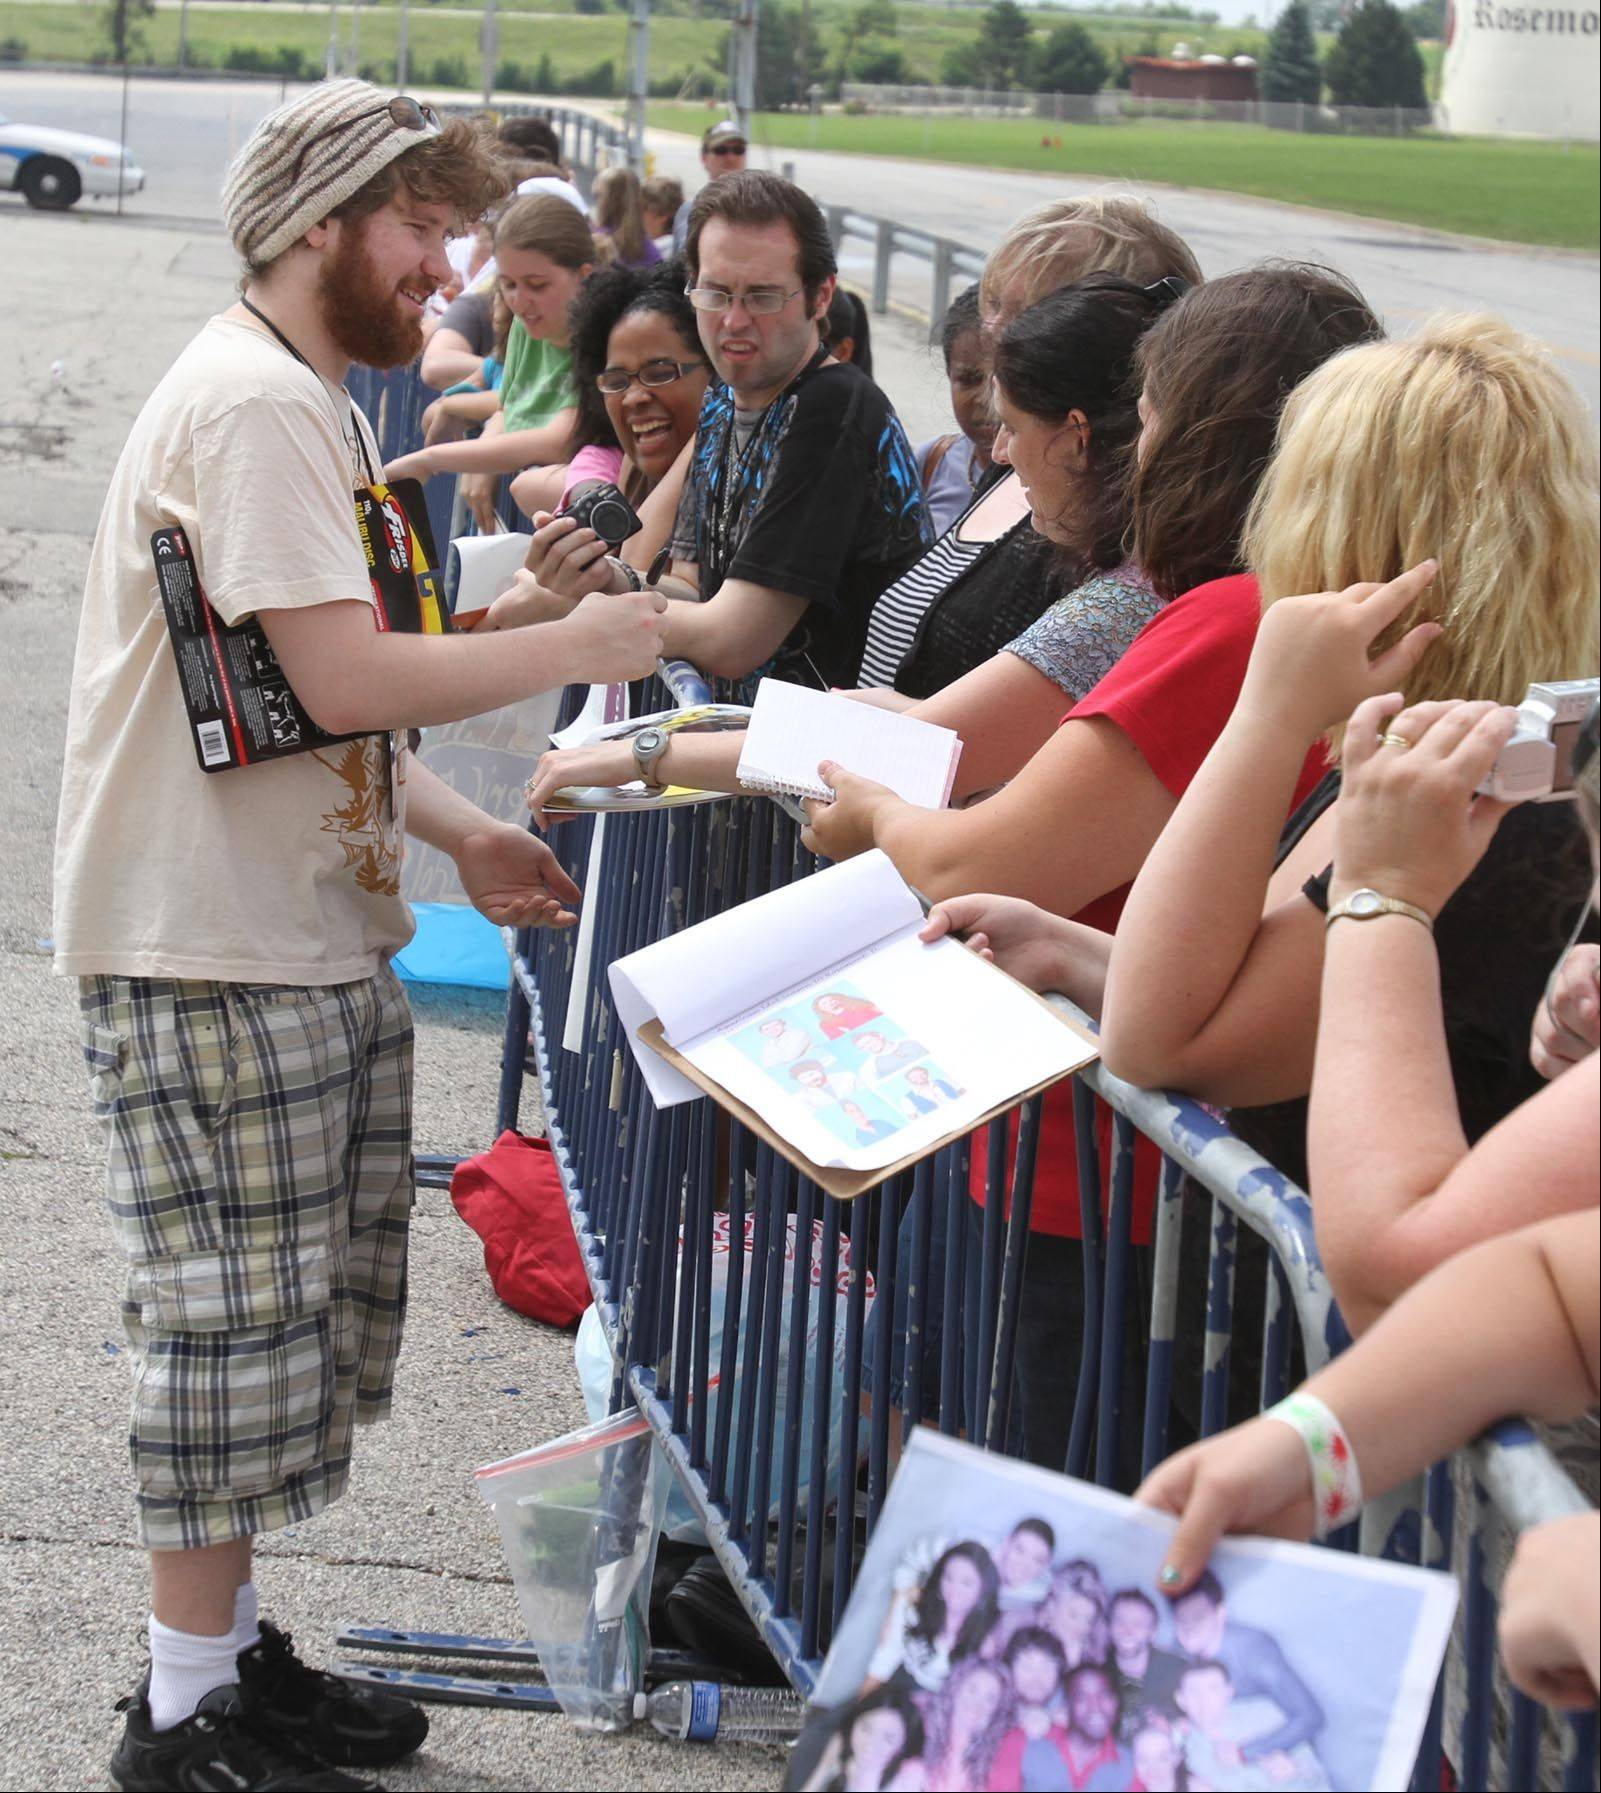 Casey Abrams signs autographs for fans before the concert.